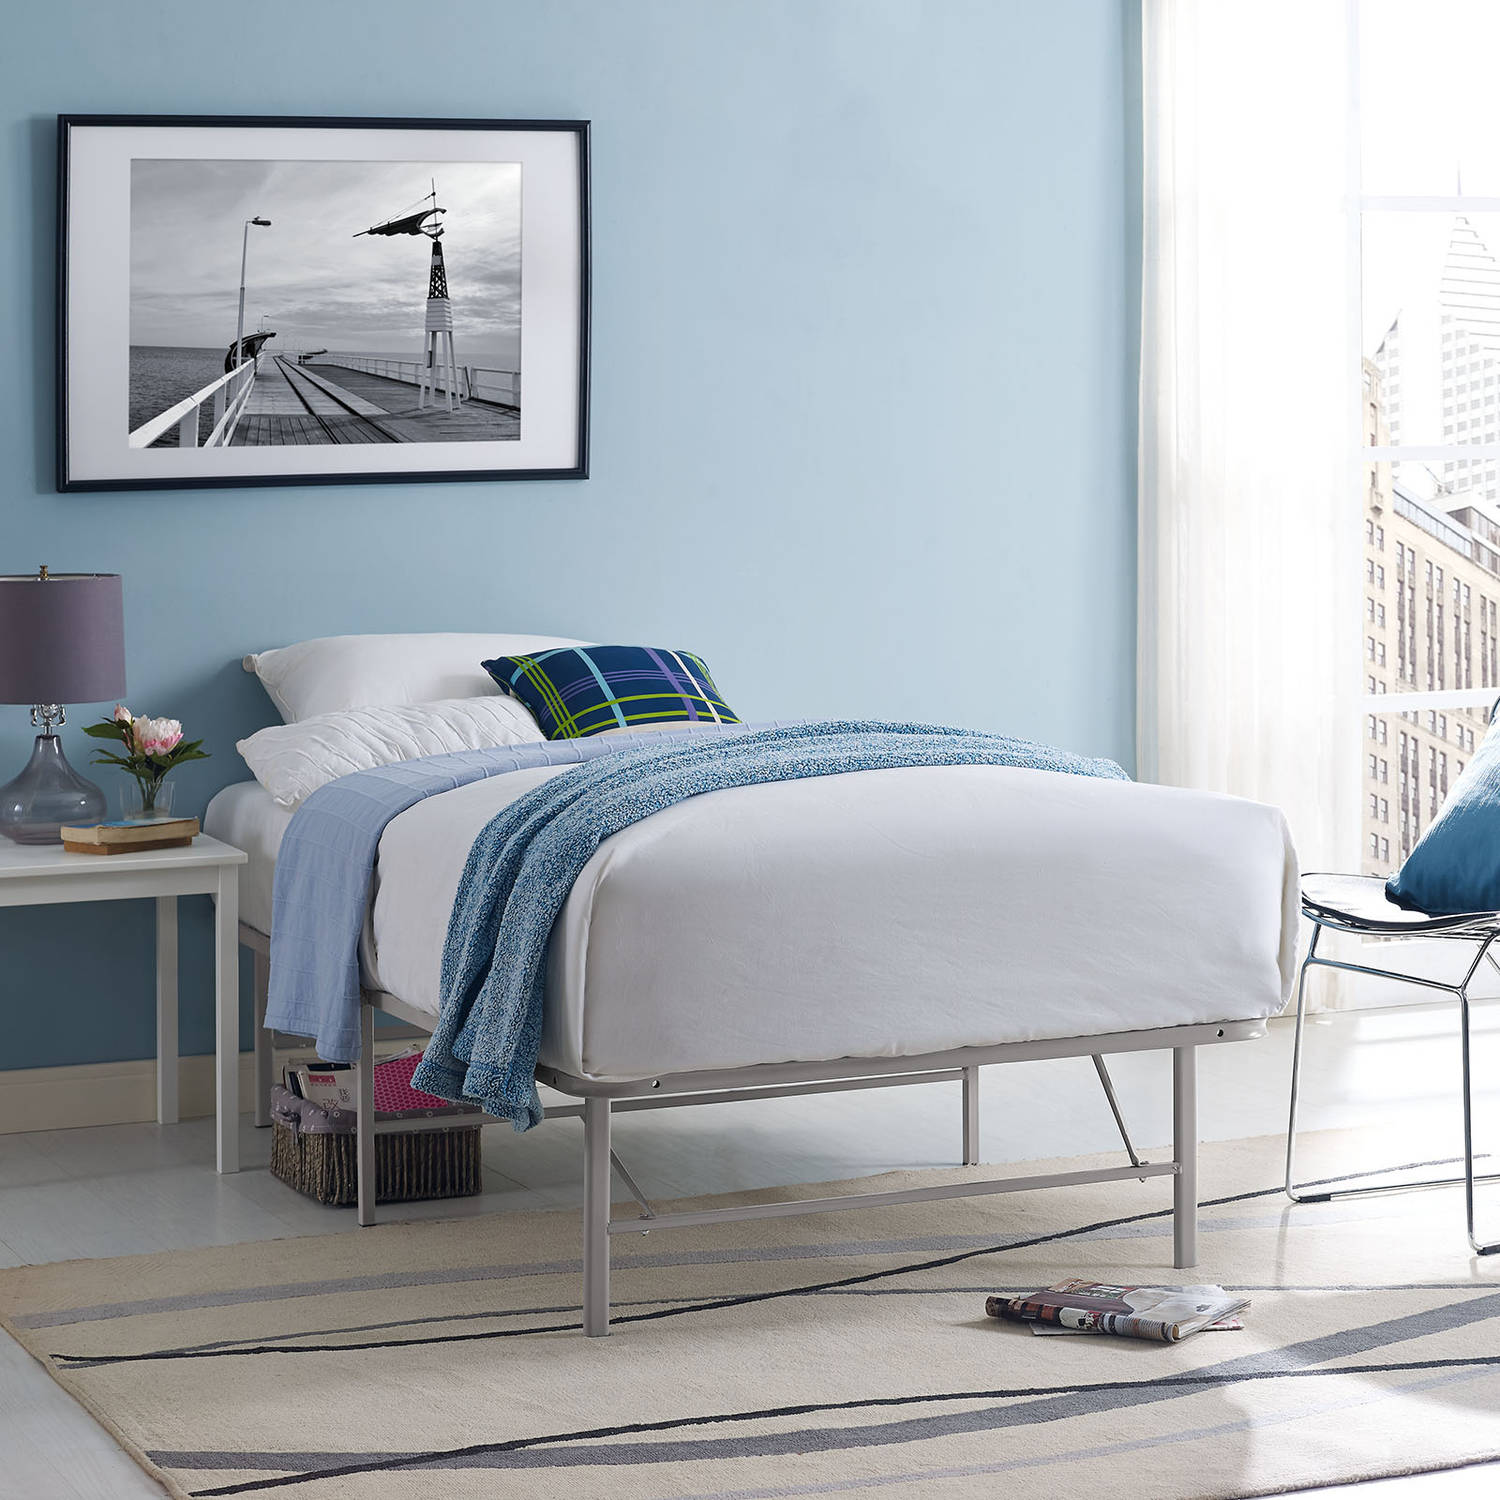 Modway Horizon Stainless Steel Bed Frame, Multiple Sizes and Colors